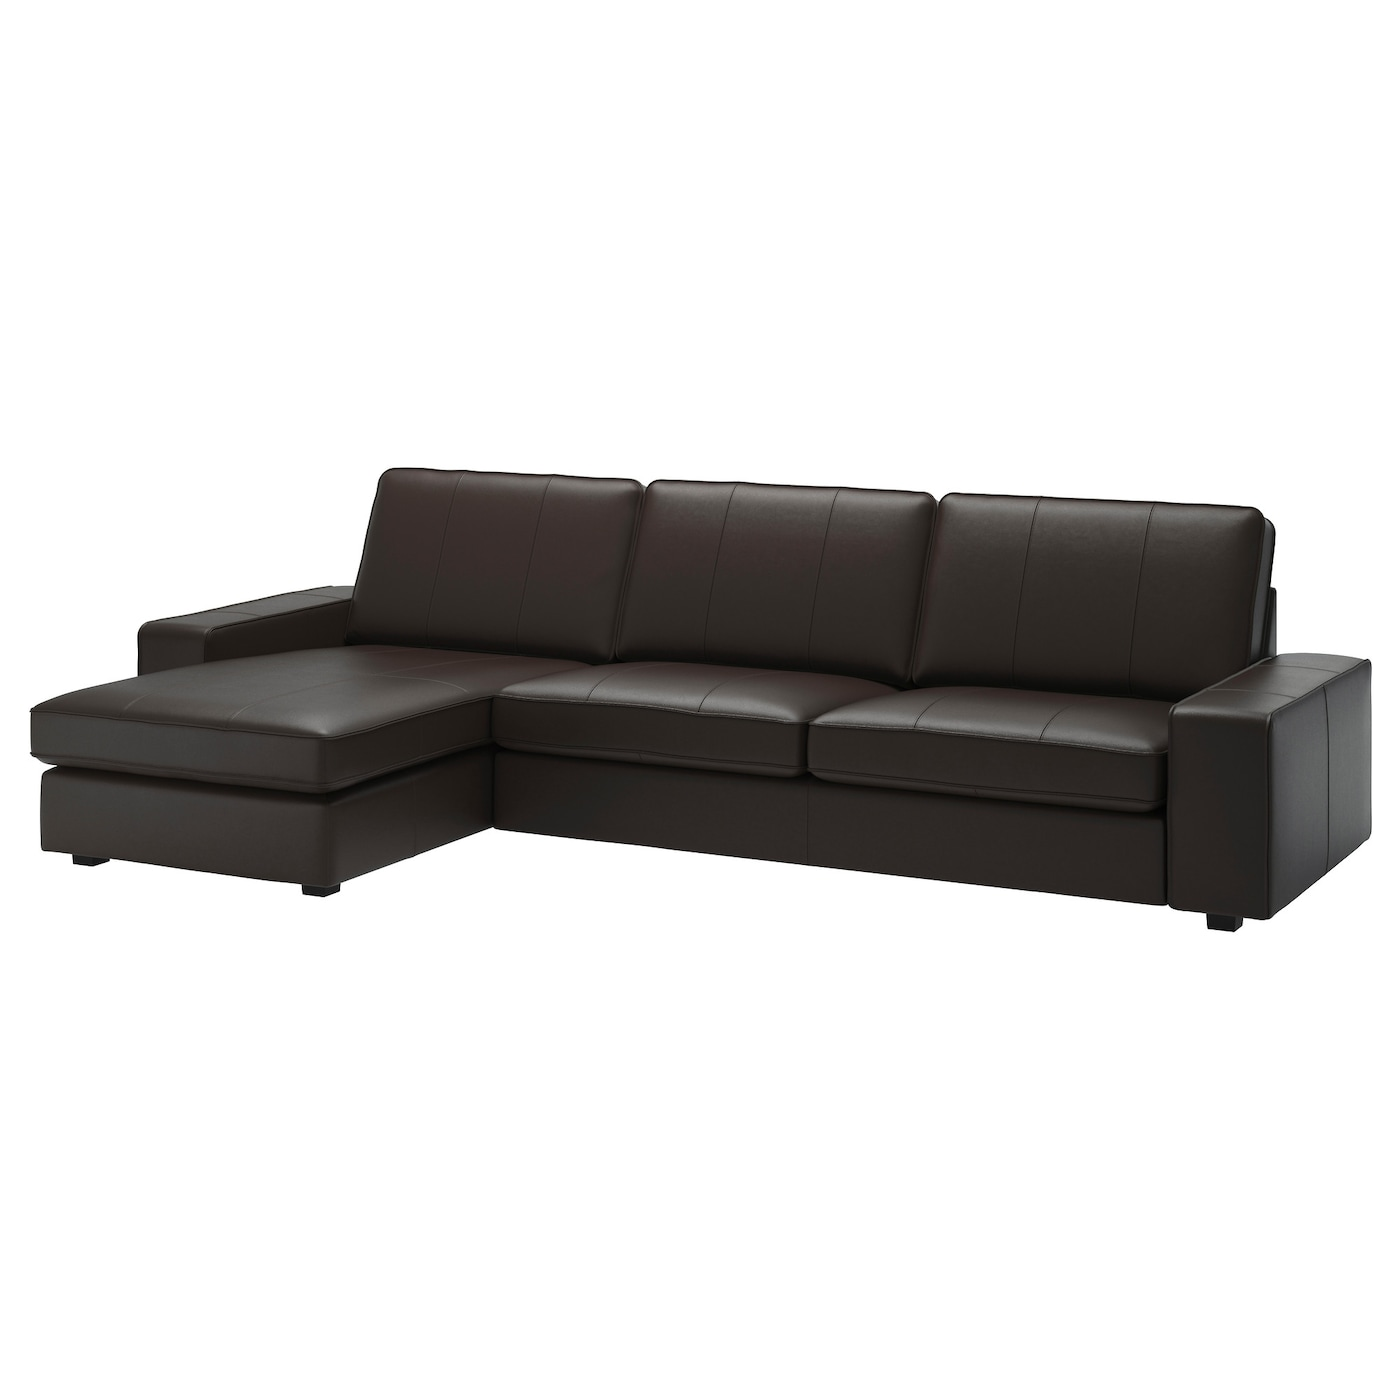 Kivik 4 seat sofa with chaise longue grann bomstad dark for Sofas de 4 plazas baratos